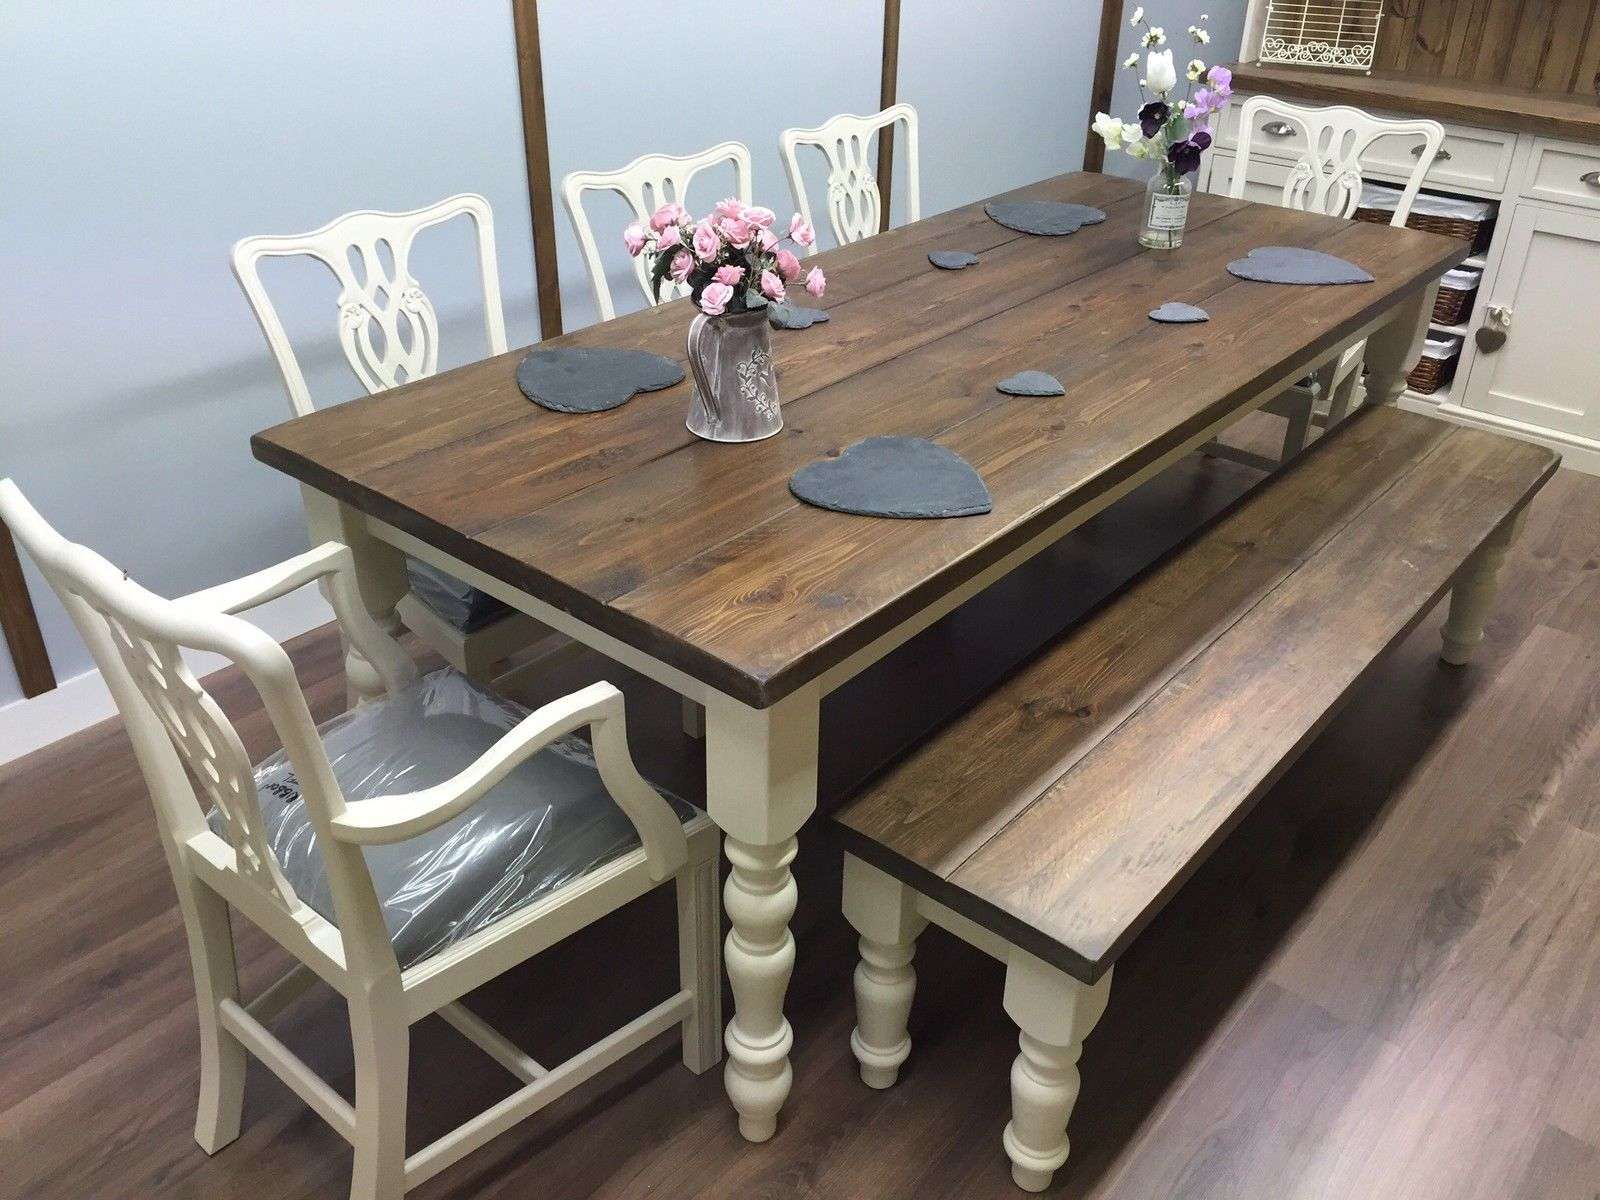 Rustic Pine Farmhouse Dining Table And 5 Chairs Bench Shabby Chic 7ft Oak Large